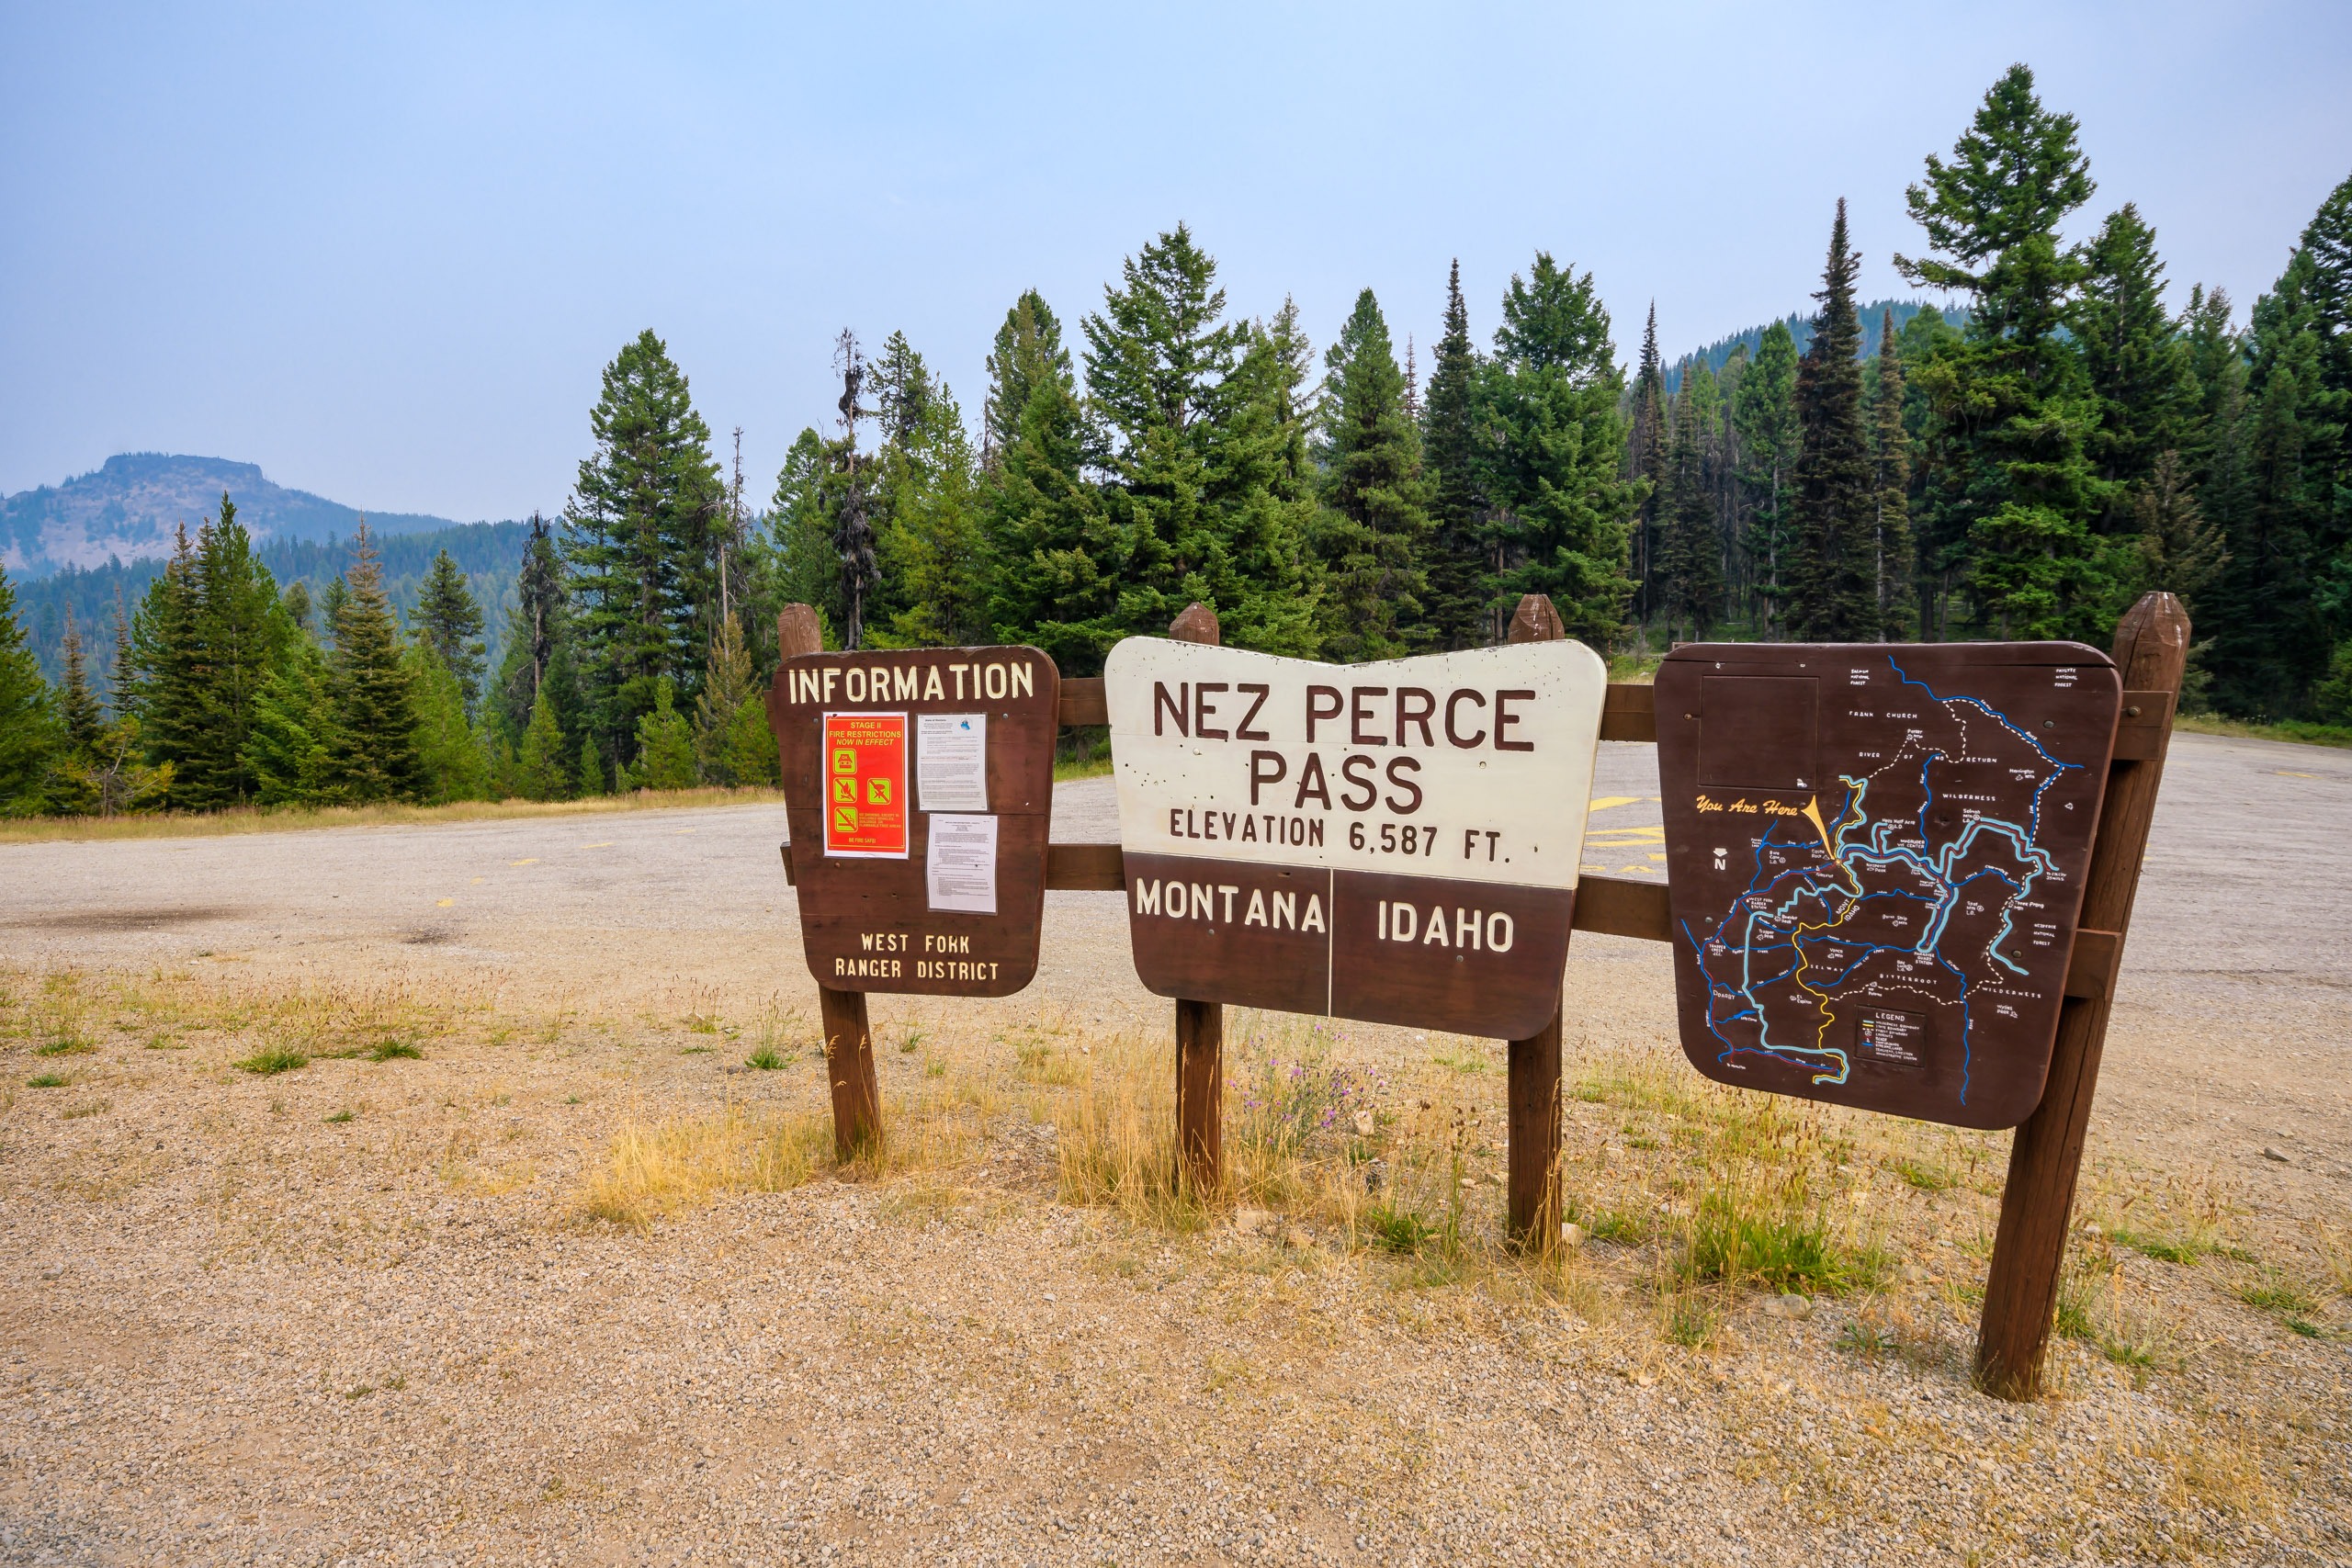 On the border of Montana and Idaho, Nez Perce Pass marks the descent into the Magruder Corridor